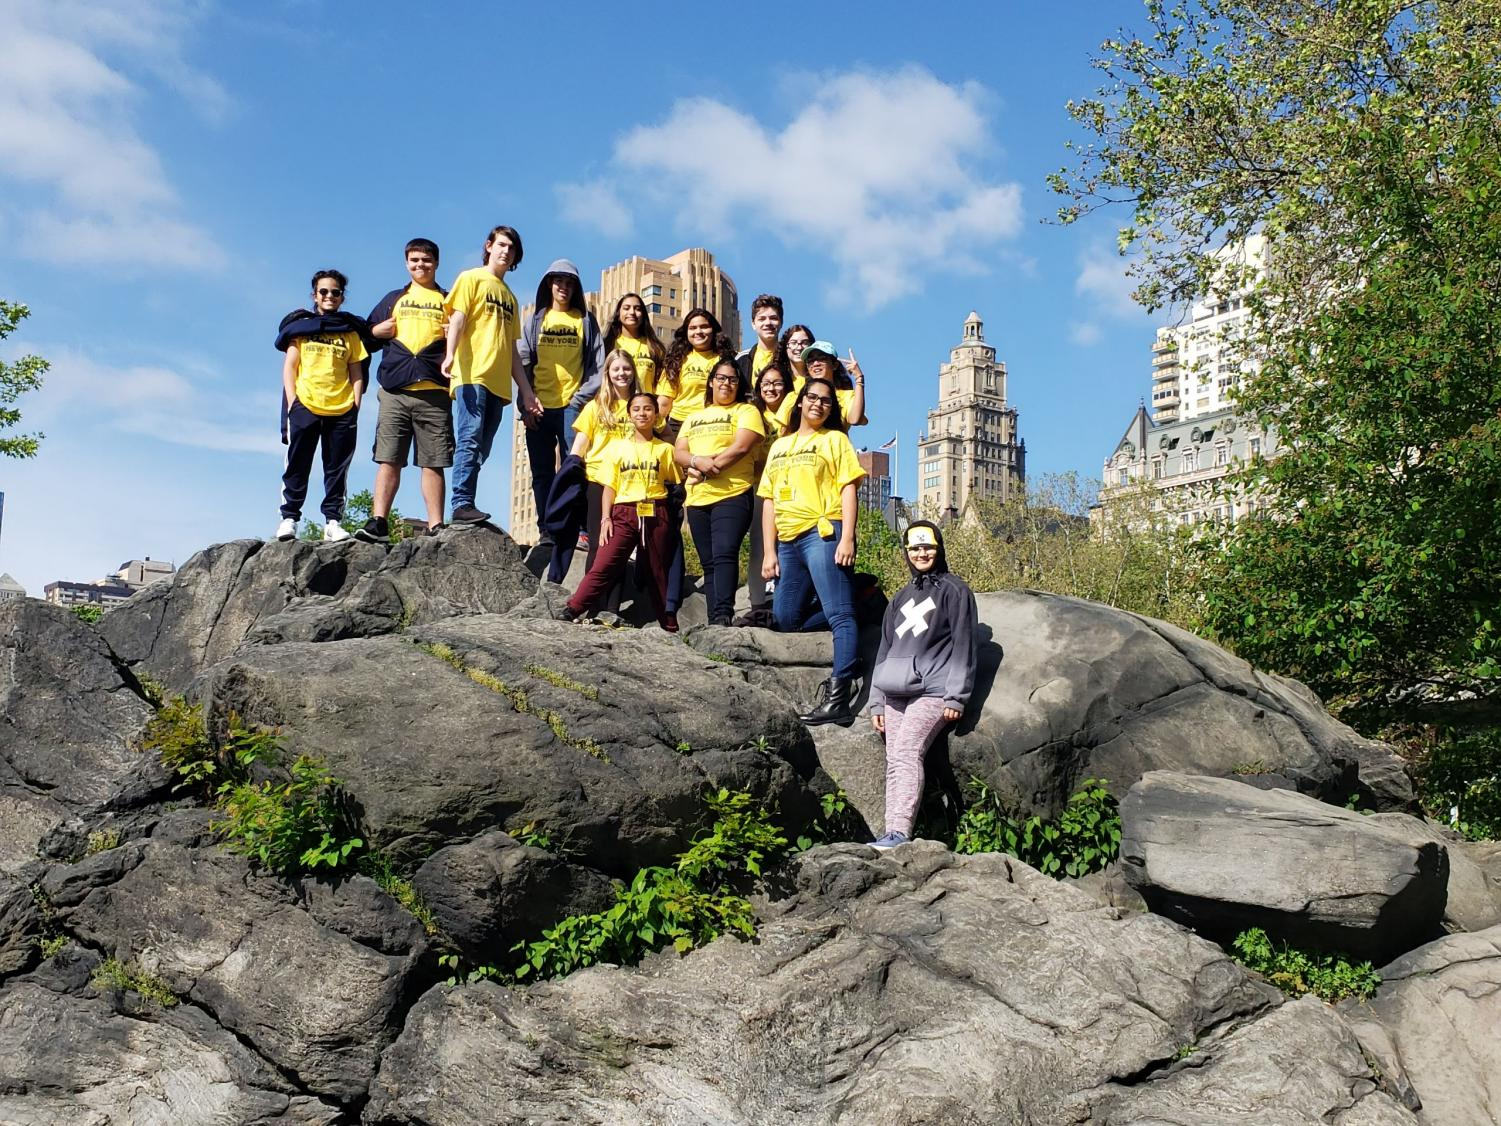 8th grade poses for a photo in Central Park, NYC.